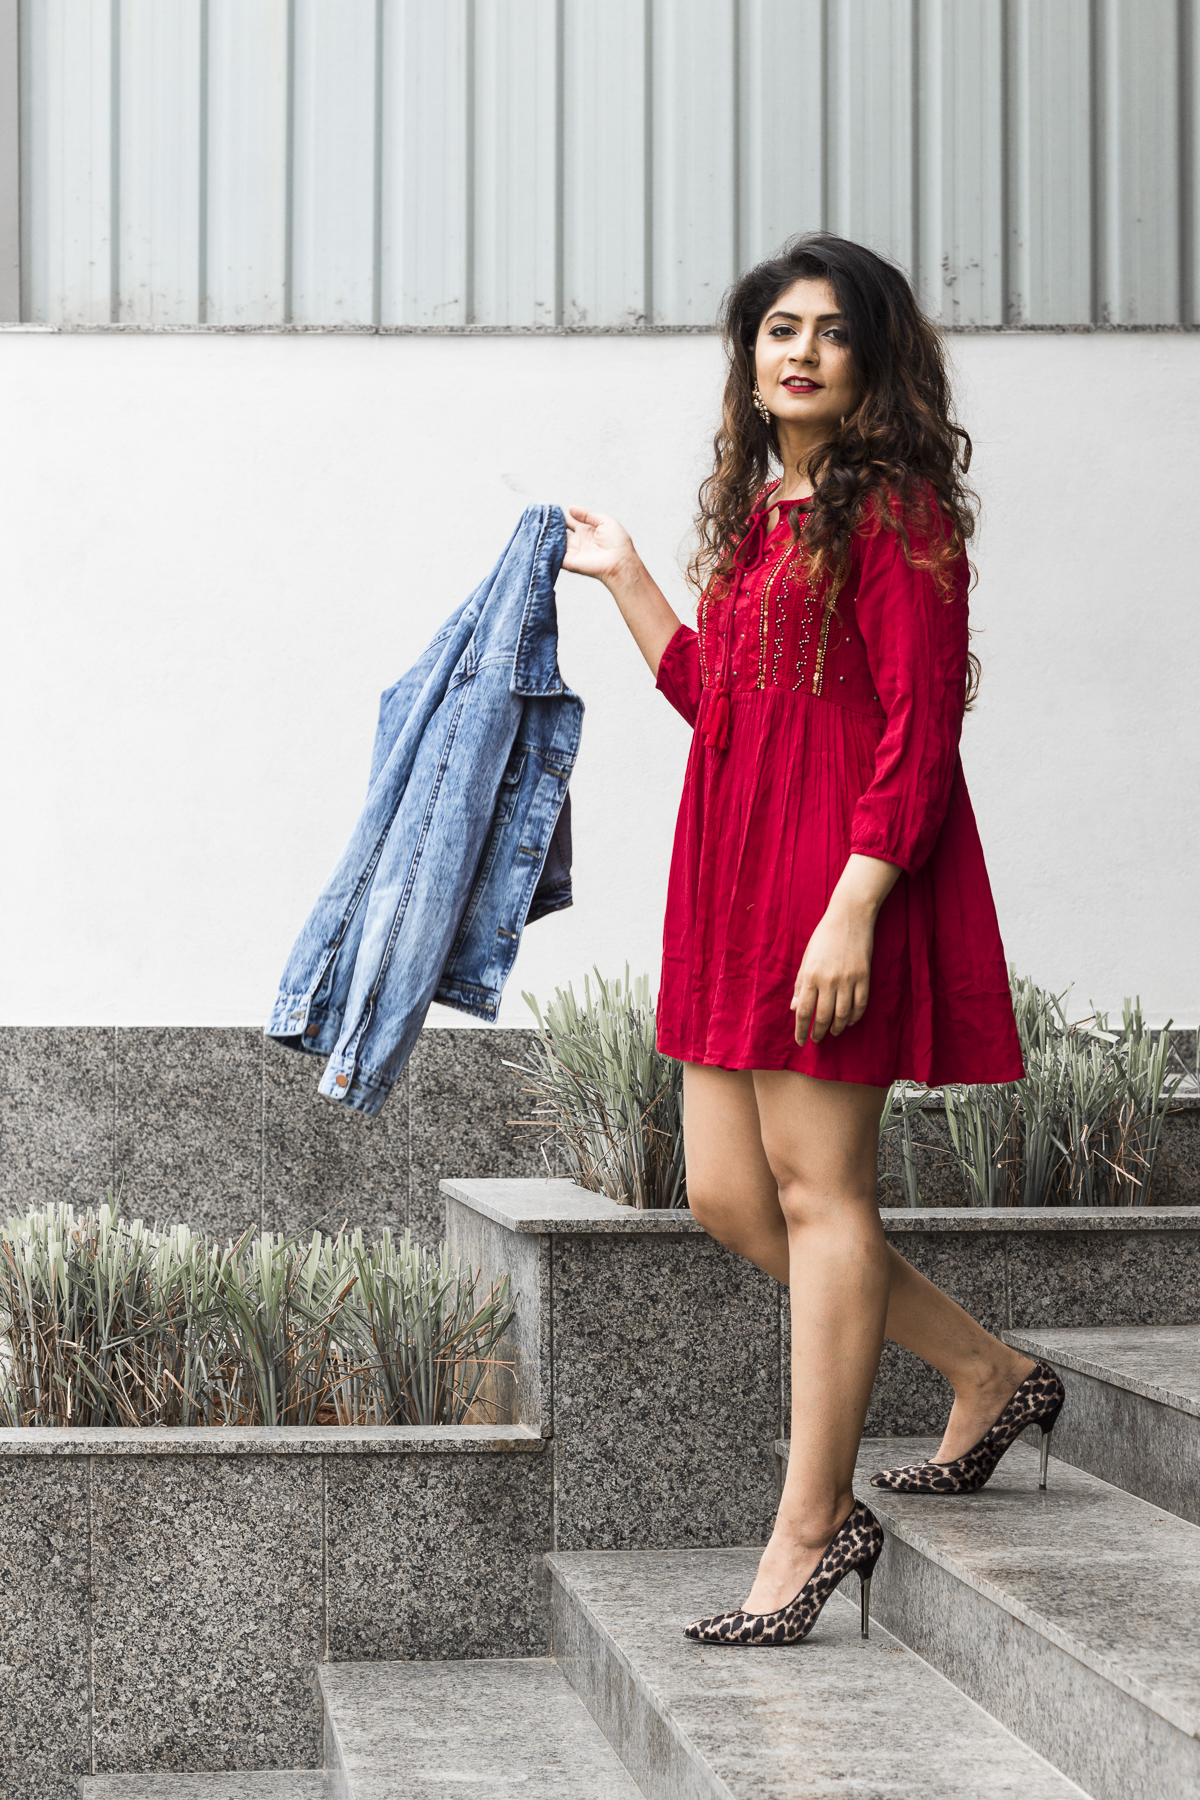 red dress by max fashion